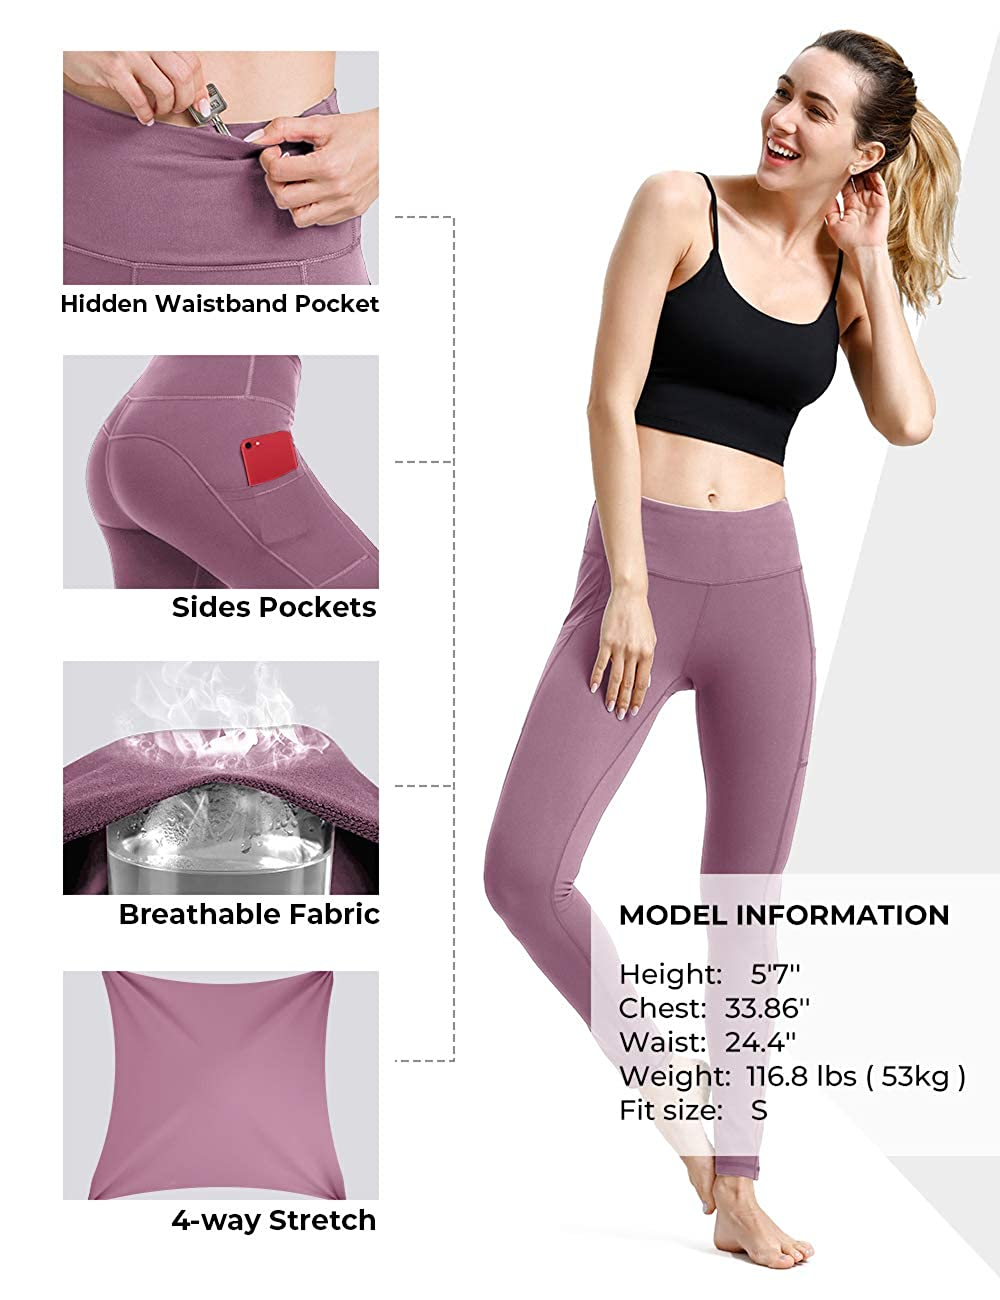 Compression Workout Leggings Tummy Control Yoga Shorts Capris ALONG FIT Yoga Pants for Women with Phone Pockets